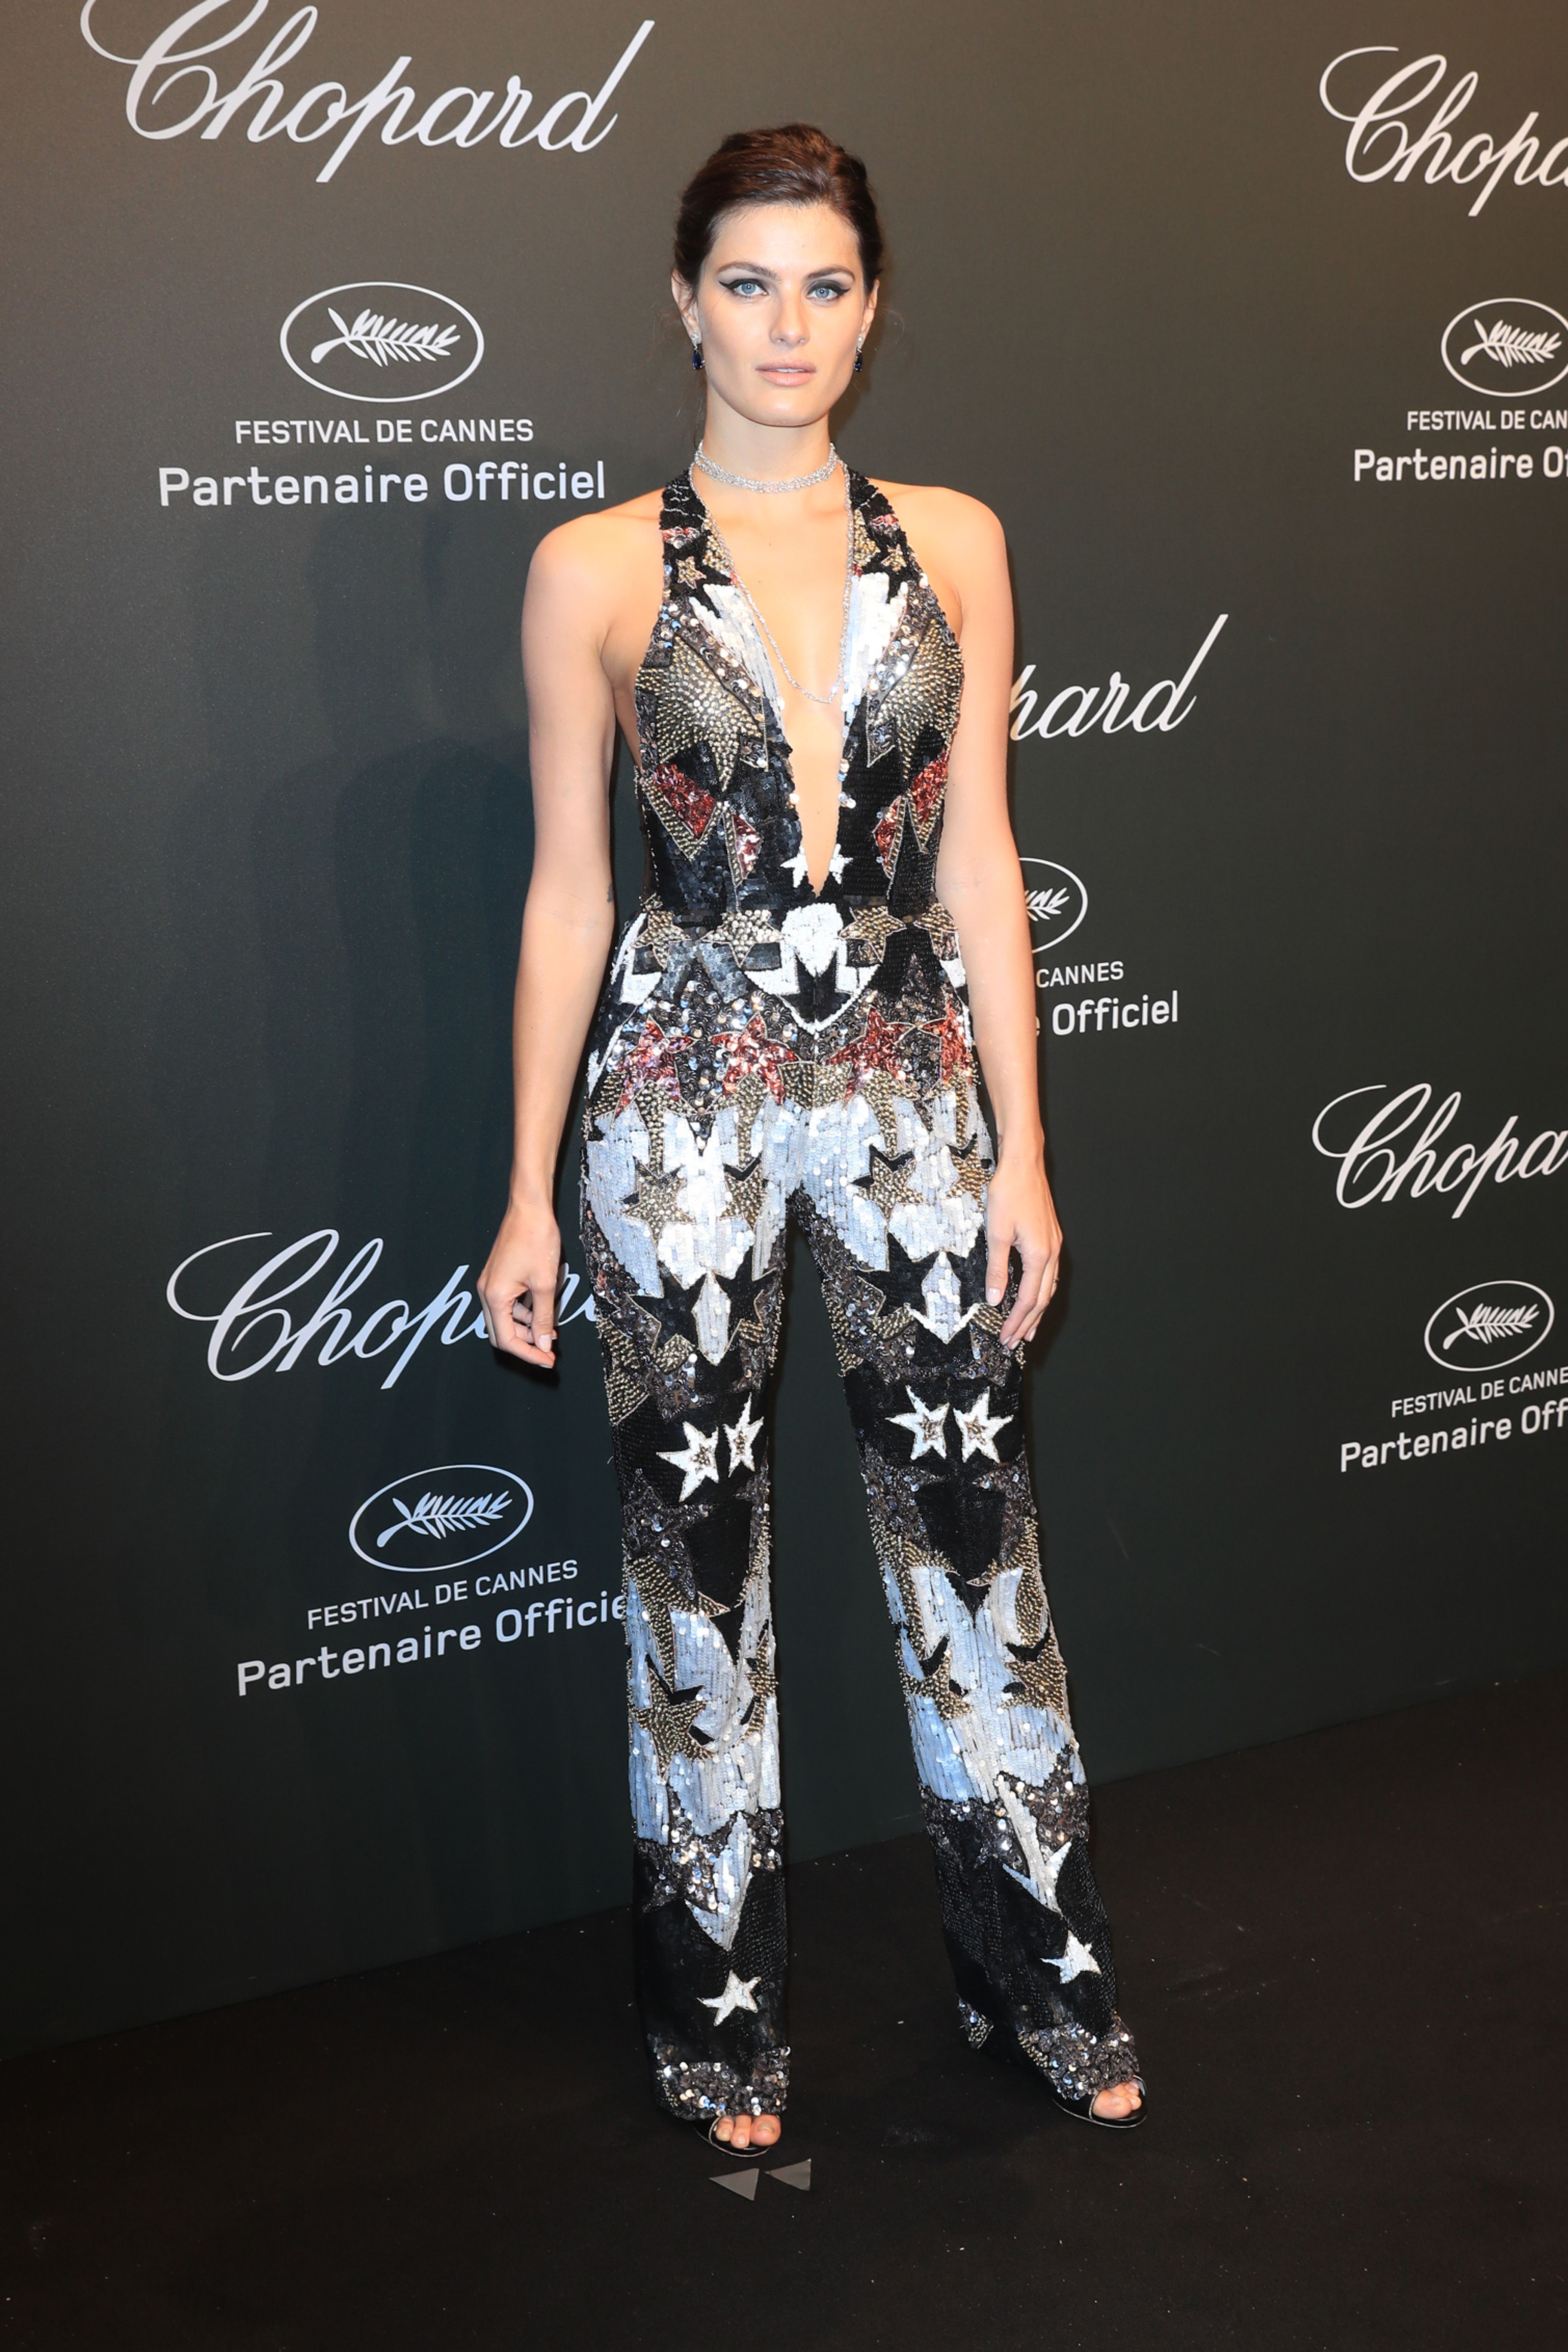 Isabeli Fontana in ELIE SAAB Ready-to-Wear Spring Summer 2017 at the Chopard Party during the 70th annual Cannes Film Festival.